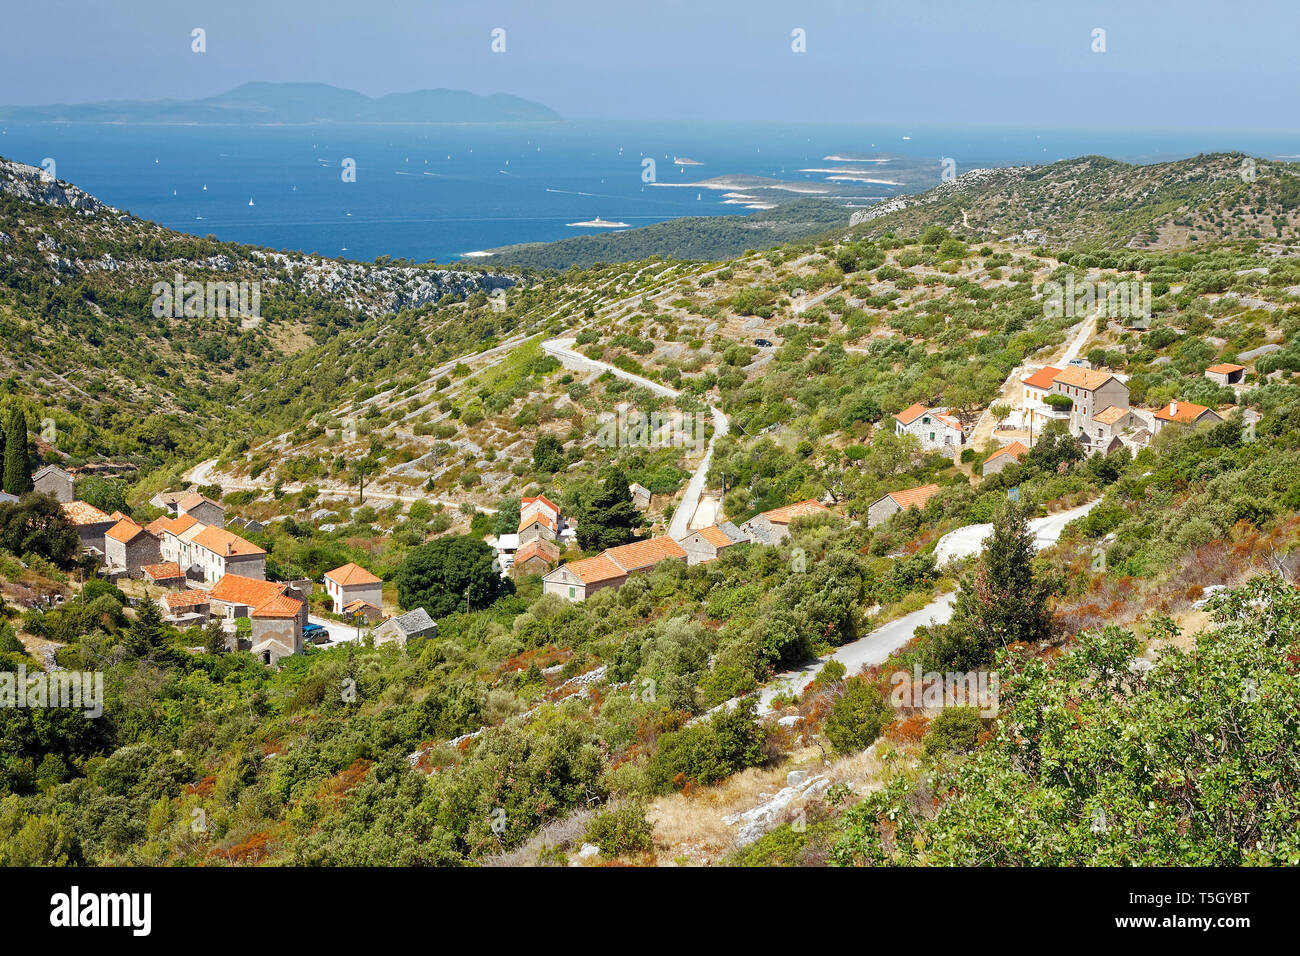 rural overviews; village; farms; hills, landscape, old buildings, roads, Adriatic Sea; distant land; Hvar; Croatia; Europe; summer, horizontal - Stock Image